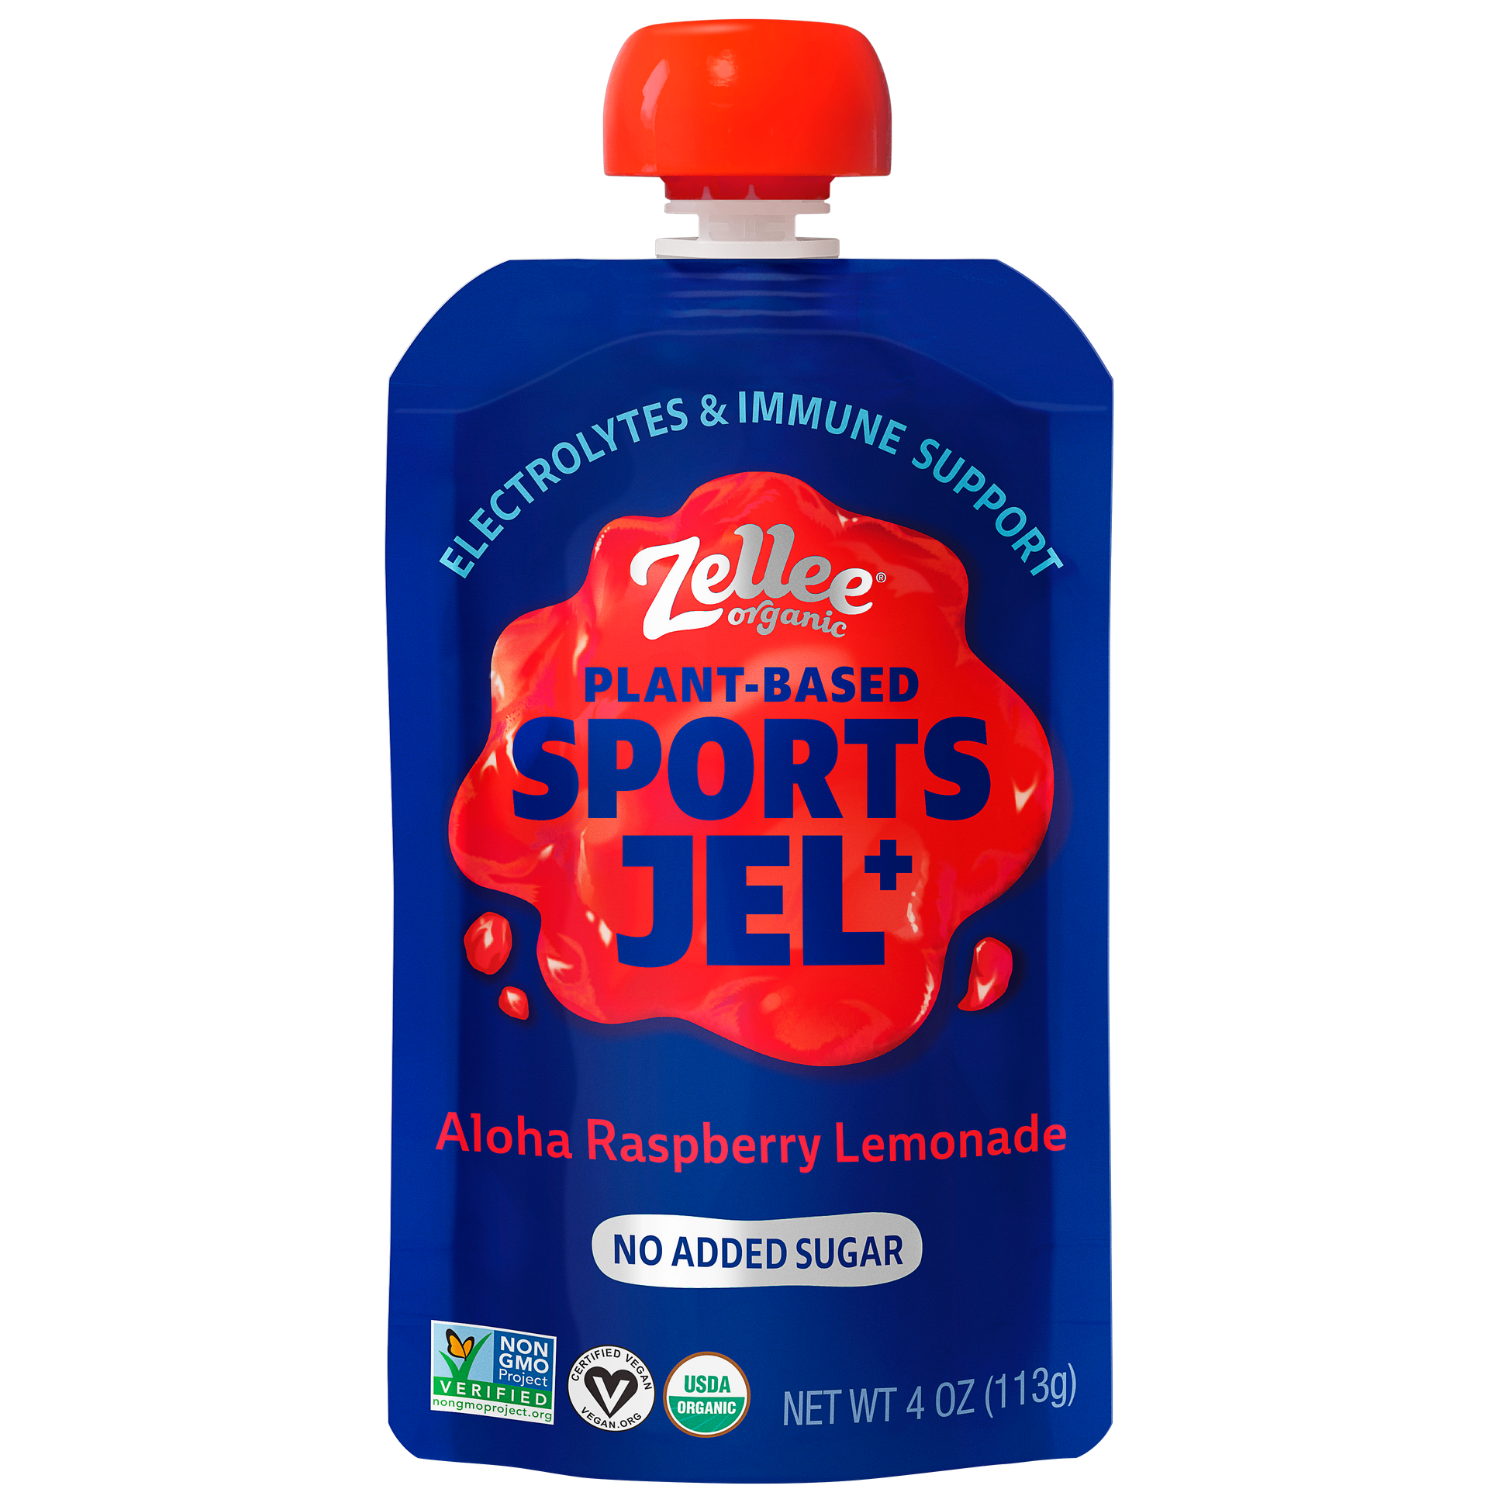 Zellee Organic Sports Jel with electrolytes in Aloha Raspberry Lemonade Flavor